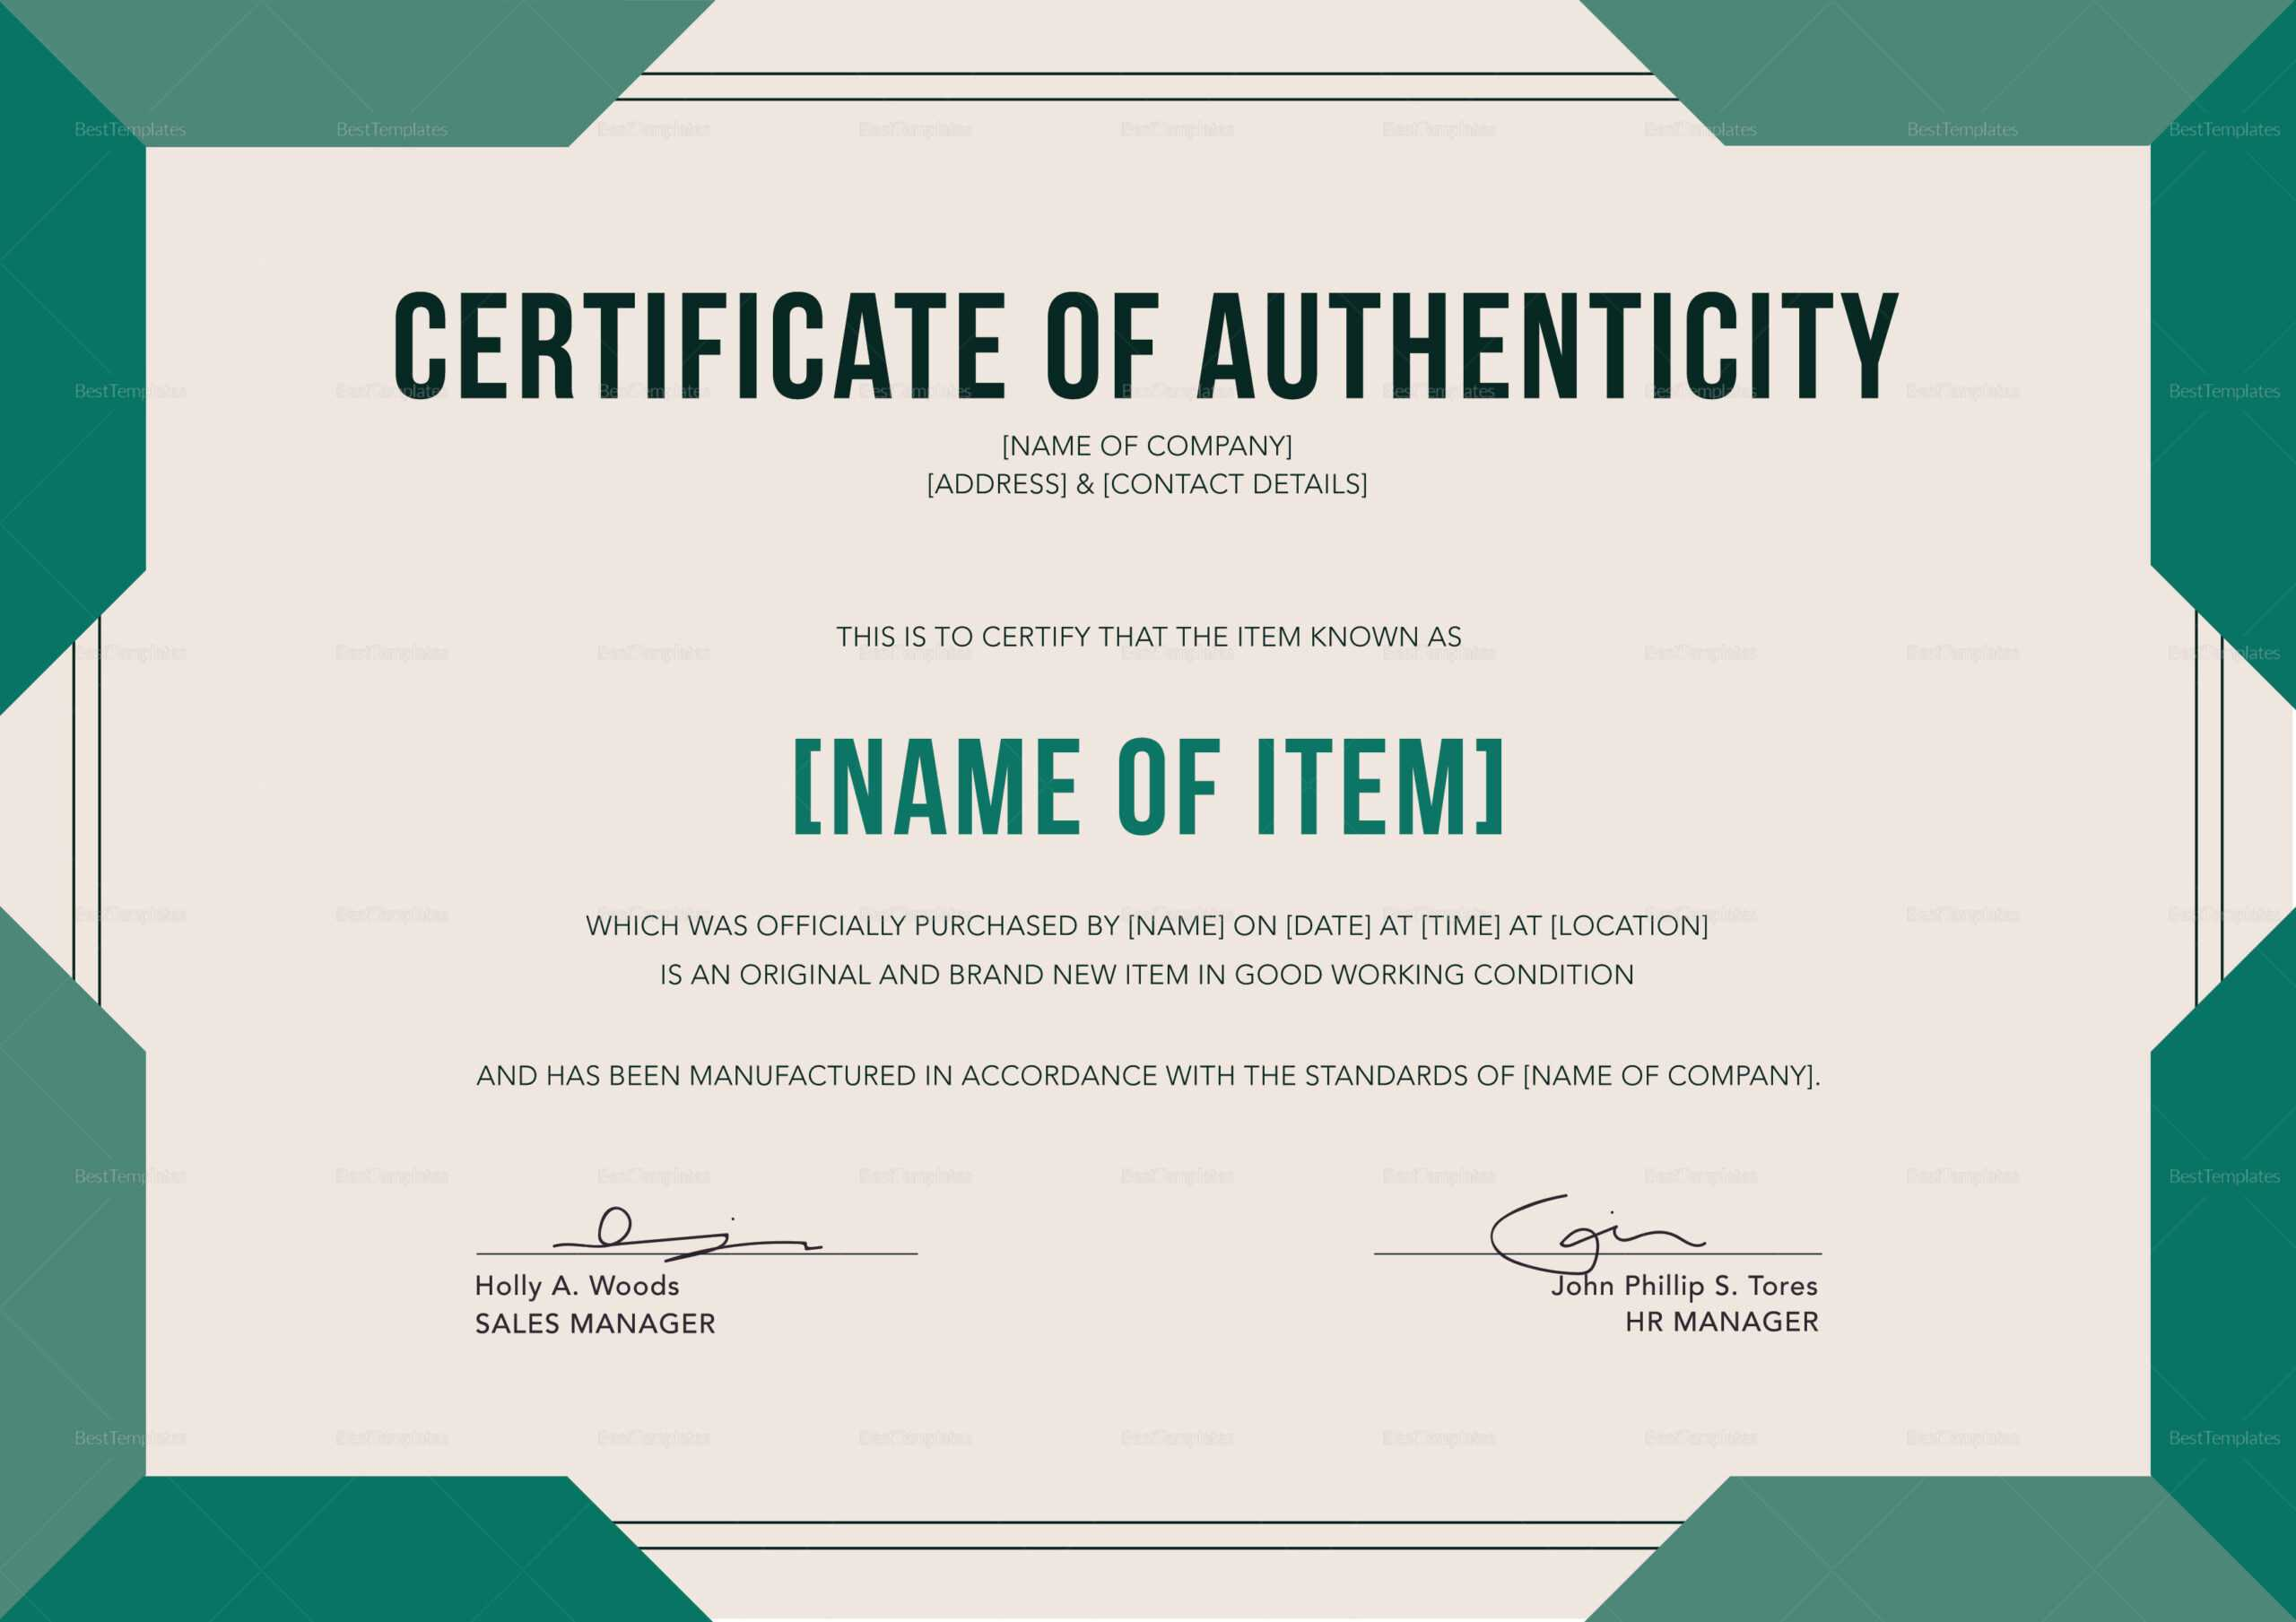 Elegant Certificate Of Authenticity Template For Certificate Of Authenticity Template